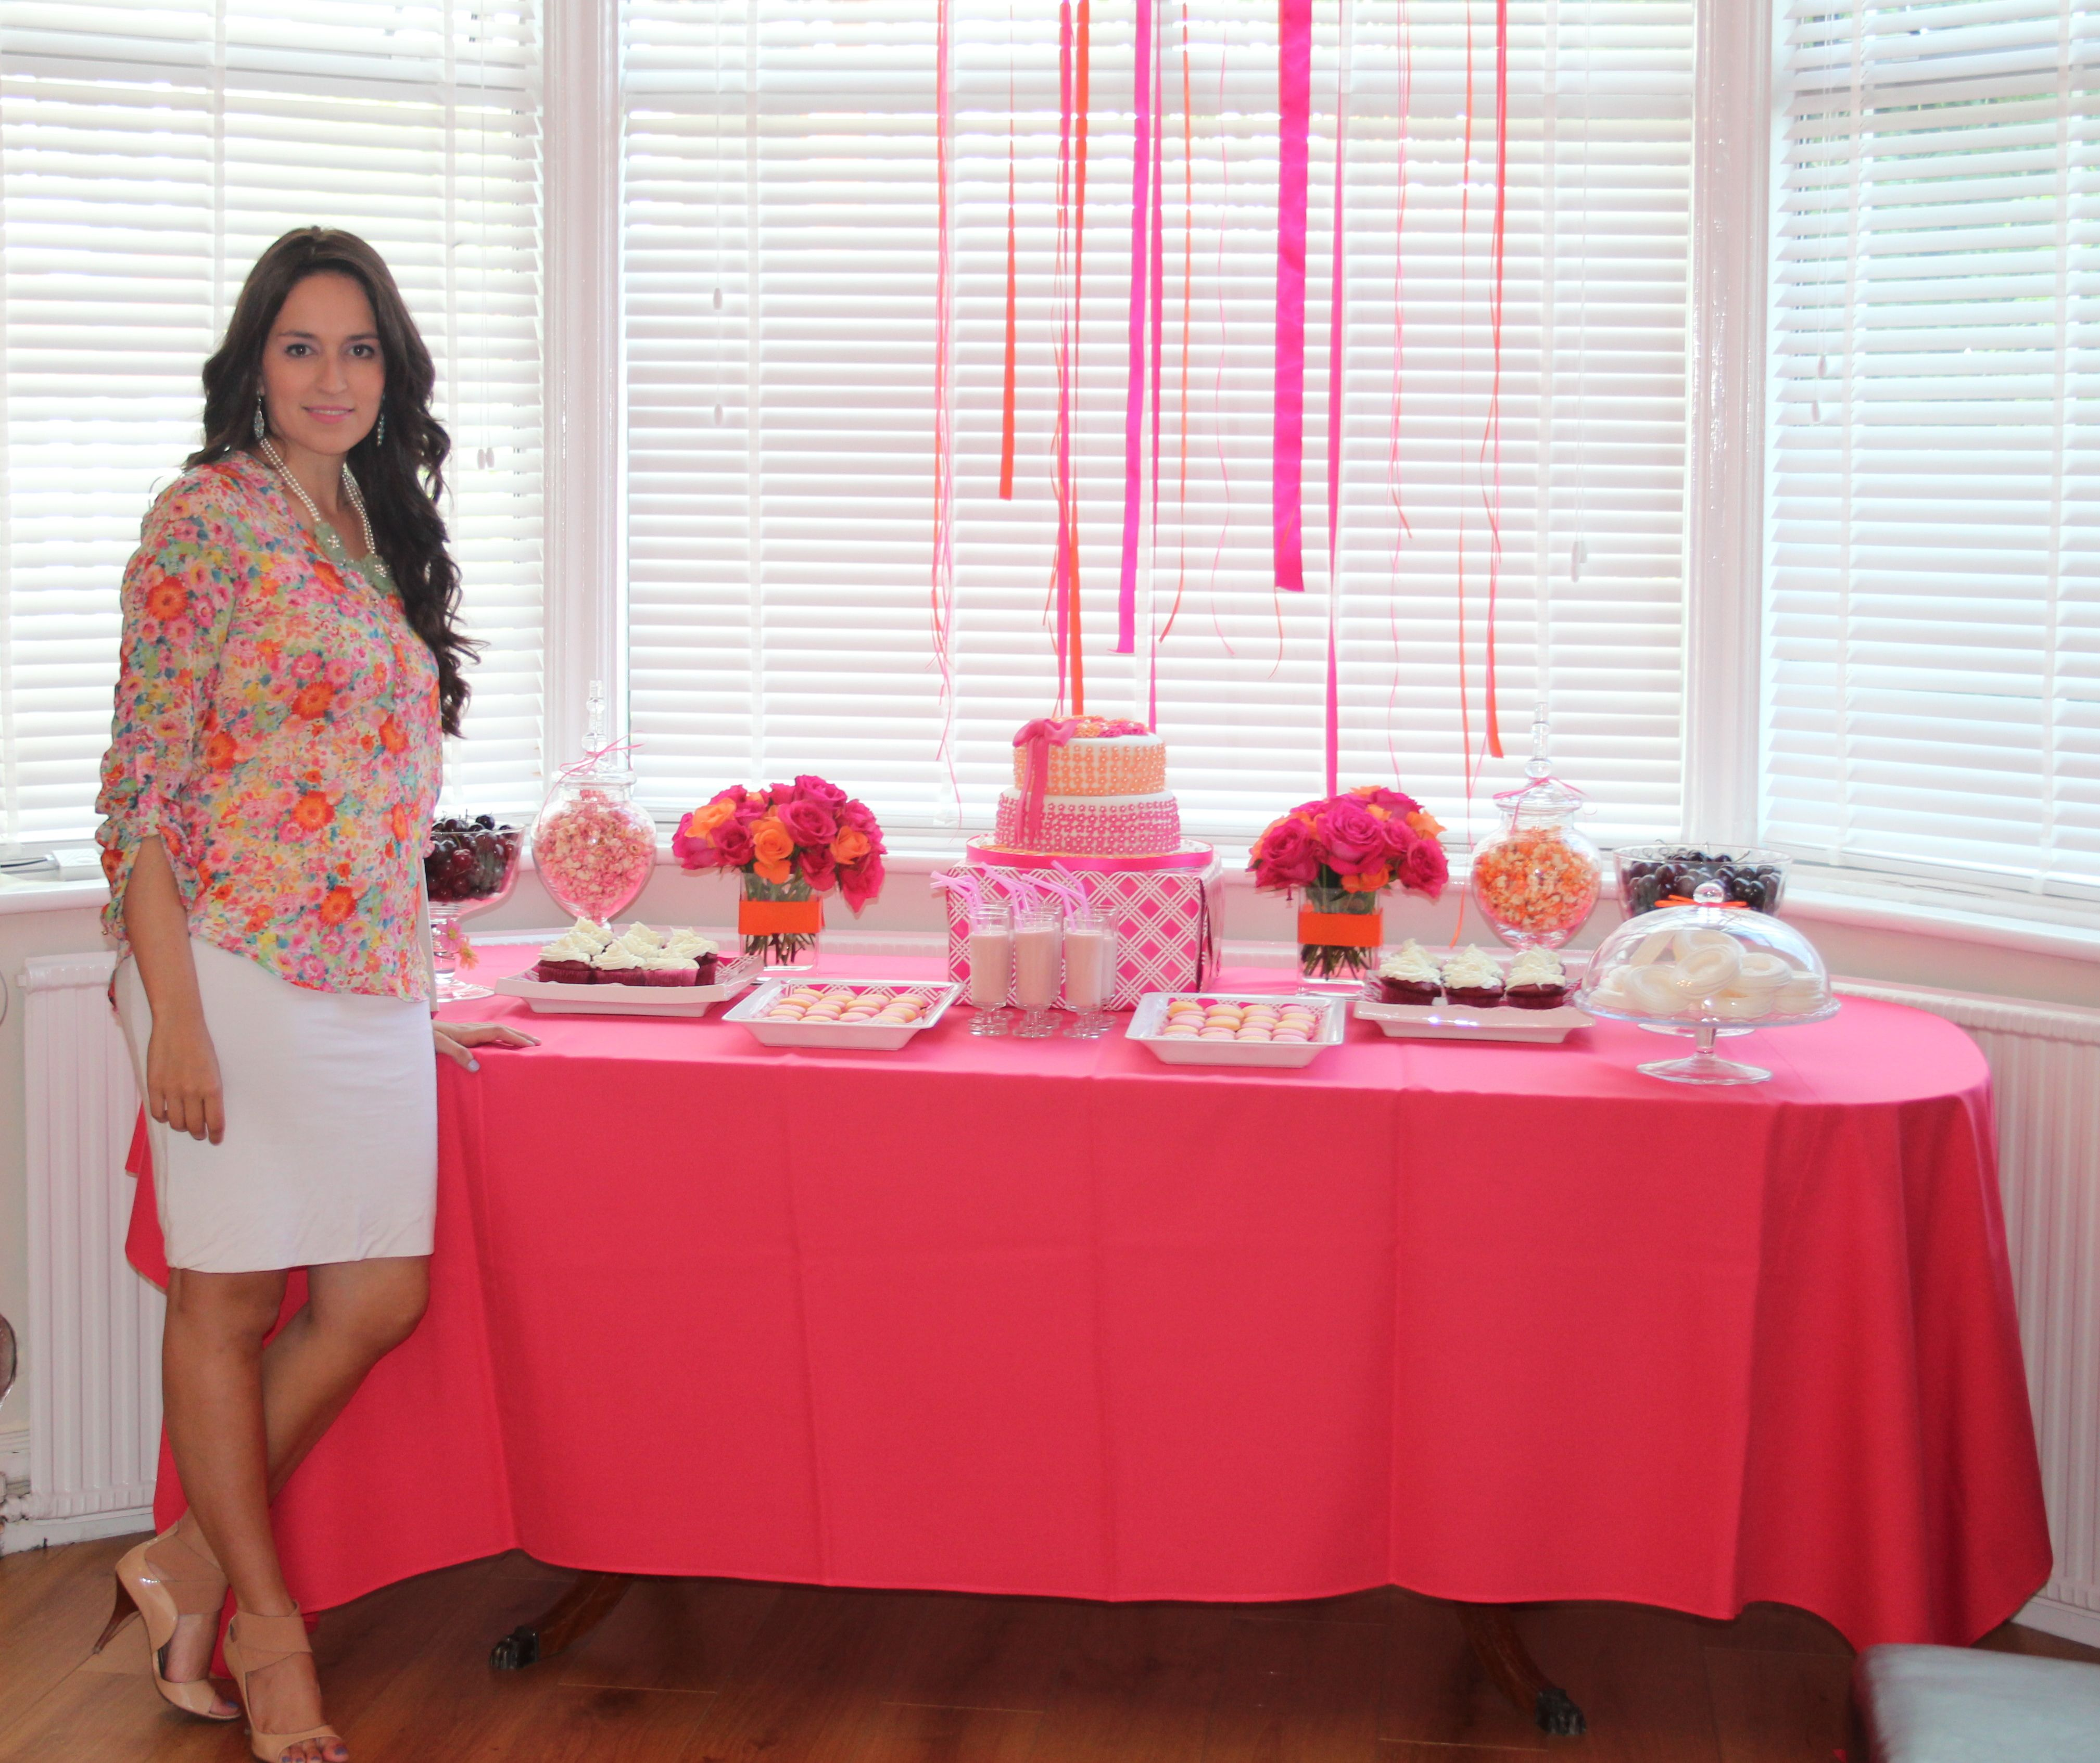 Charmant Baby Shower Decorating Ideas On A Budget   Barberryfieldcom